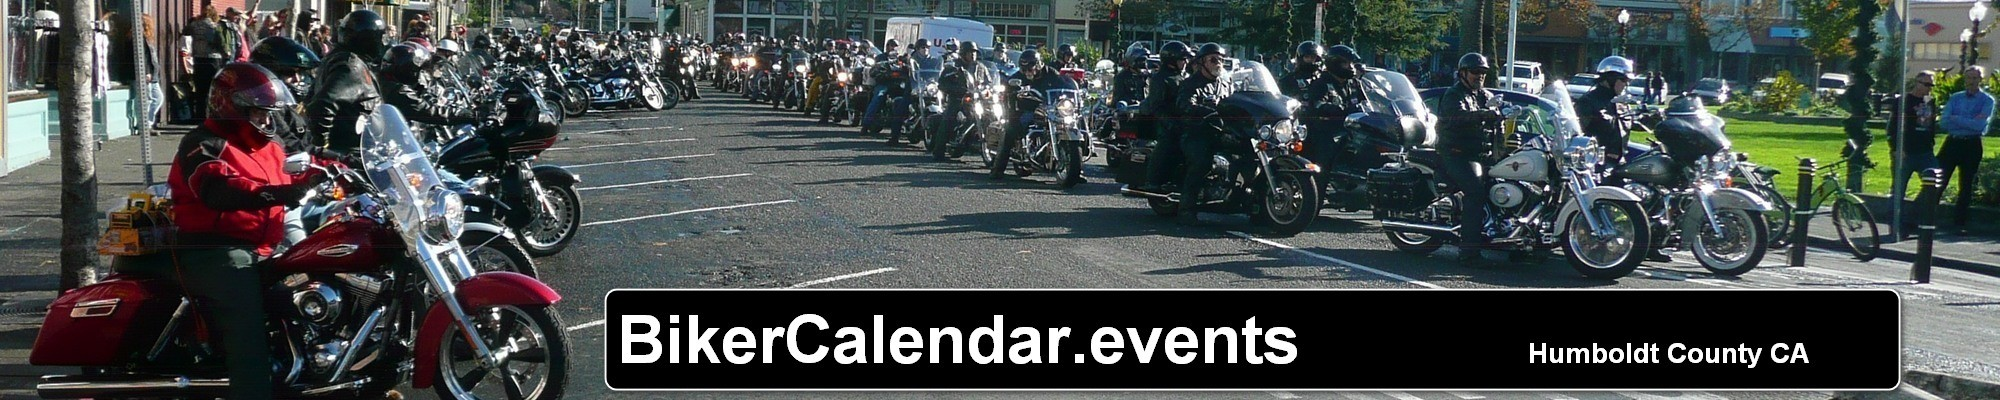 BikerCalendar.events Logo